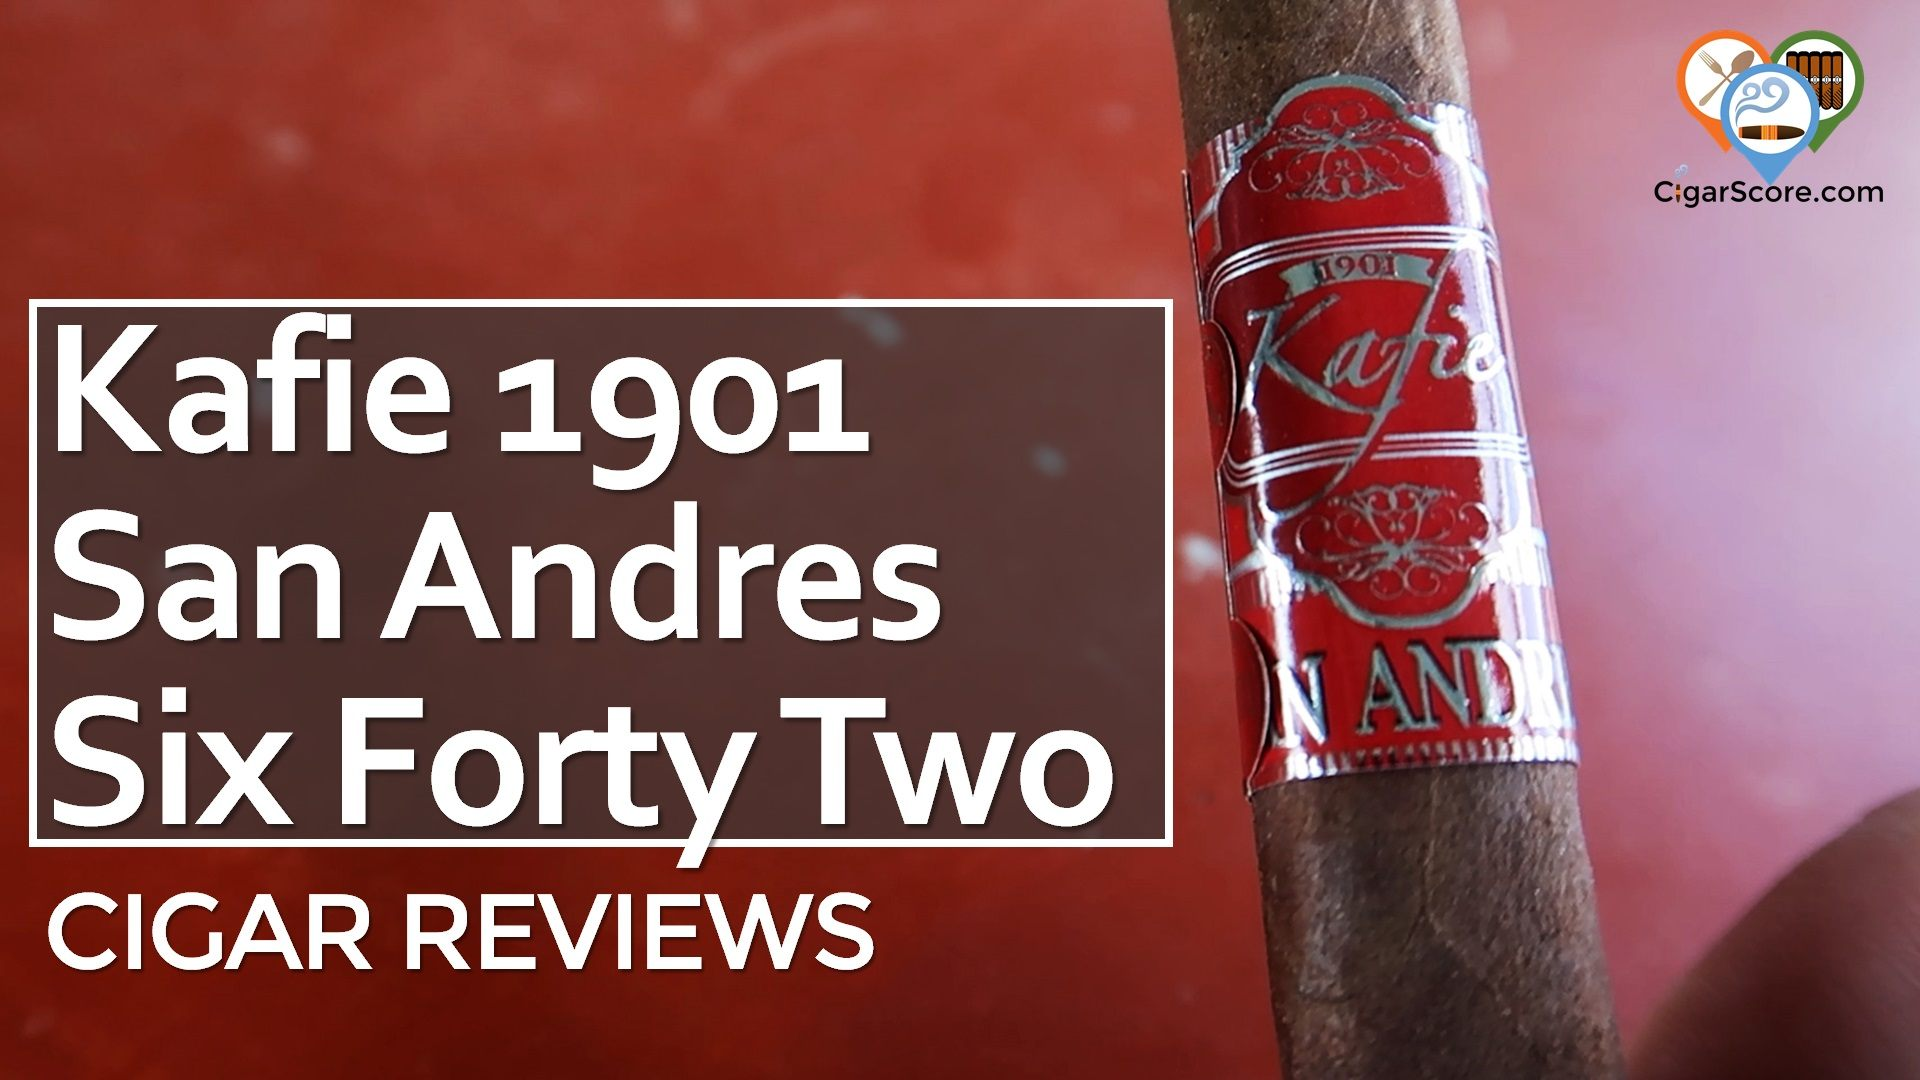 Cigar Review Kafie 1901 San Andres Six Forty Two